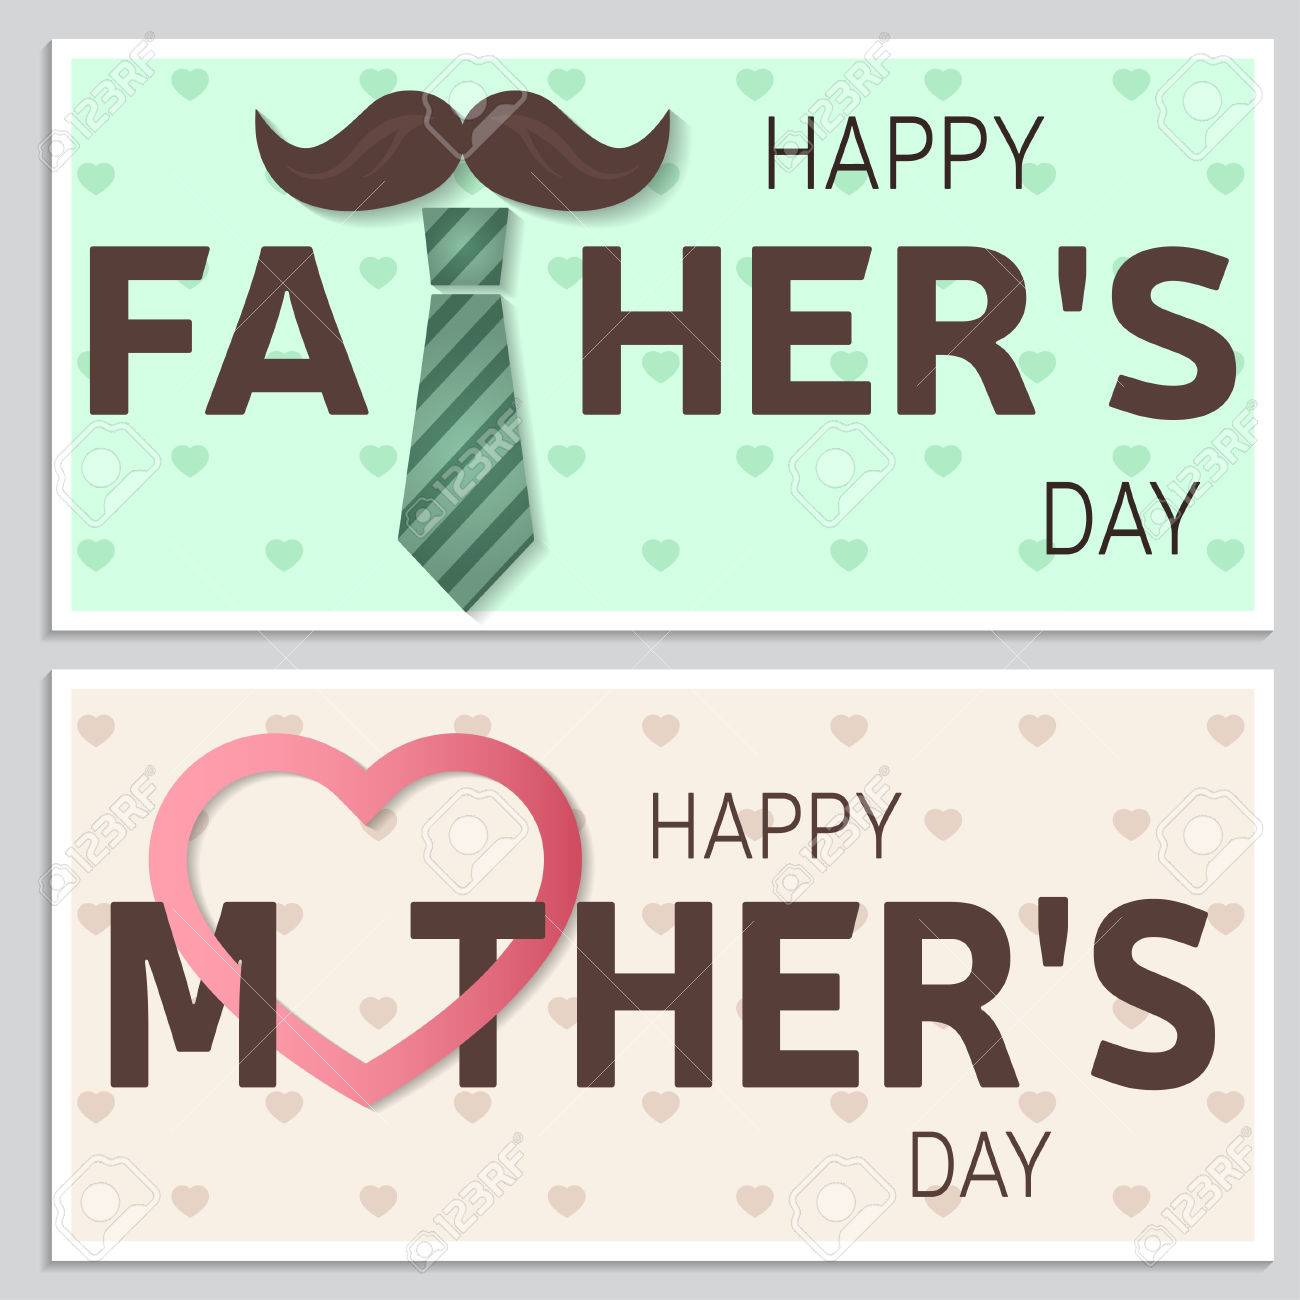 Happy Father's Day Greeting Card And Happy Mother's Day Greeting ...